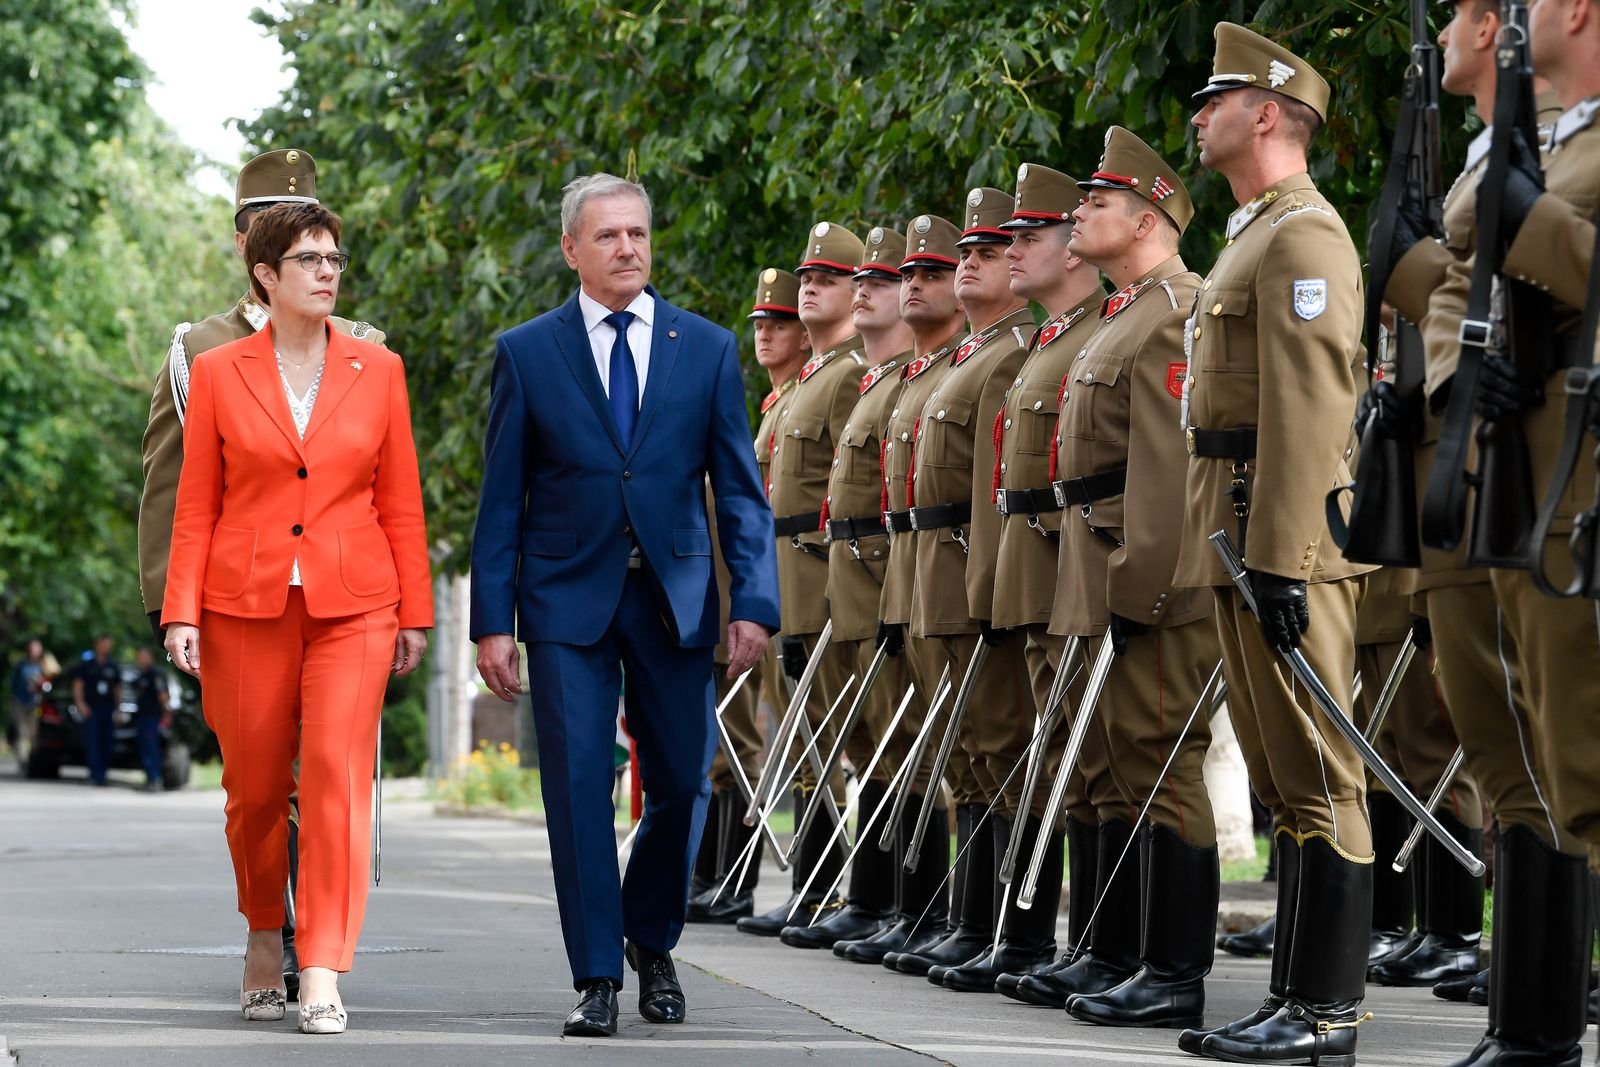 German Minsiter of Defence Annegret Kramp-Karrenbauer visits Budapest, Hungary - 16 Jul 2020